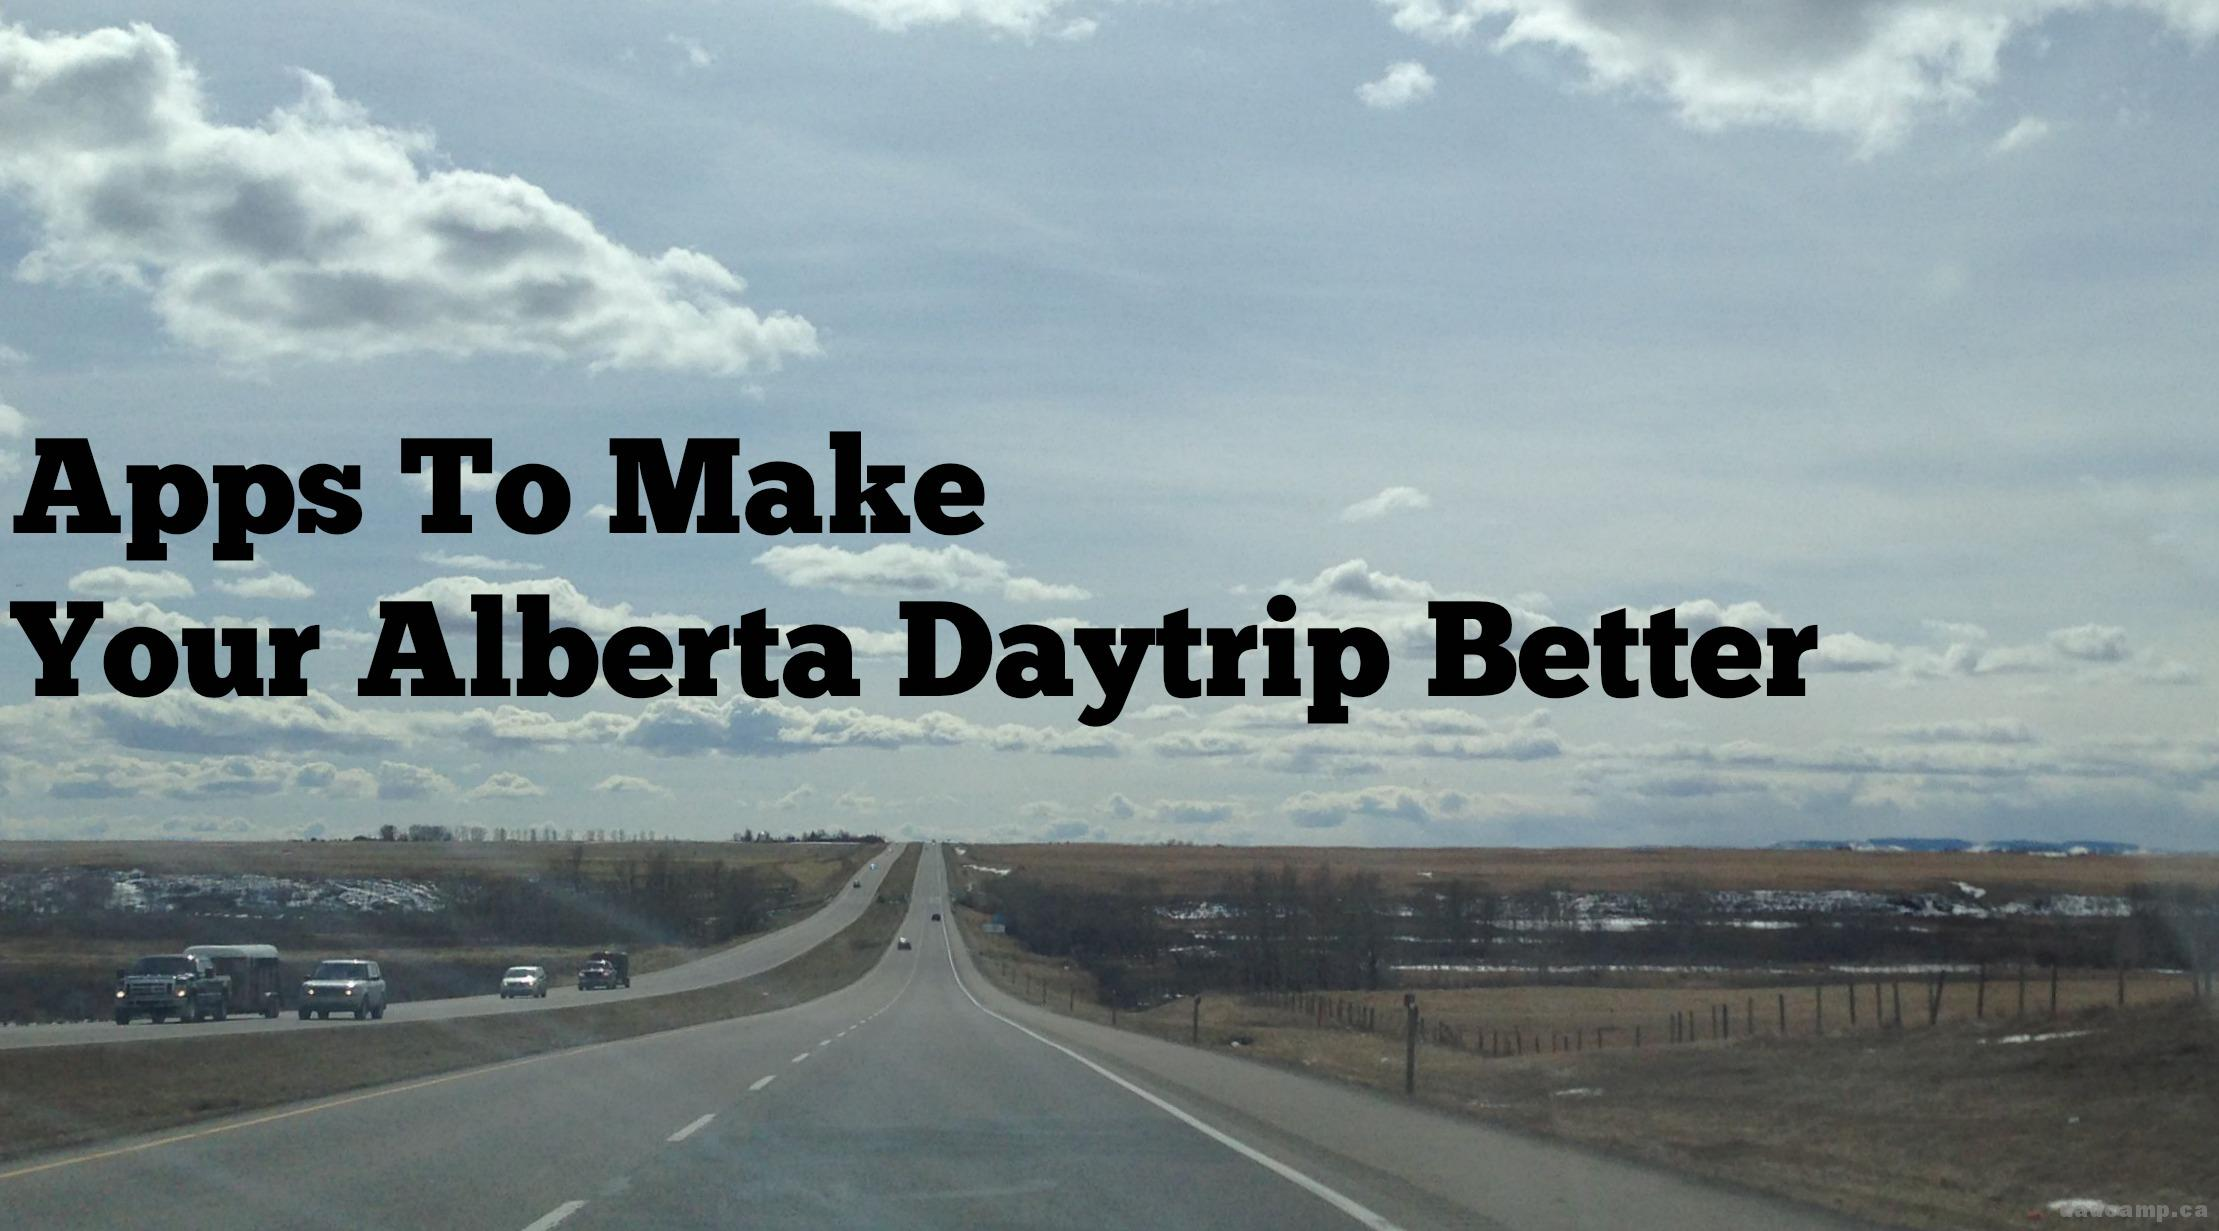 Apps To Make Your Alberta Daytrip Better